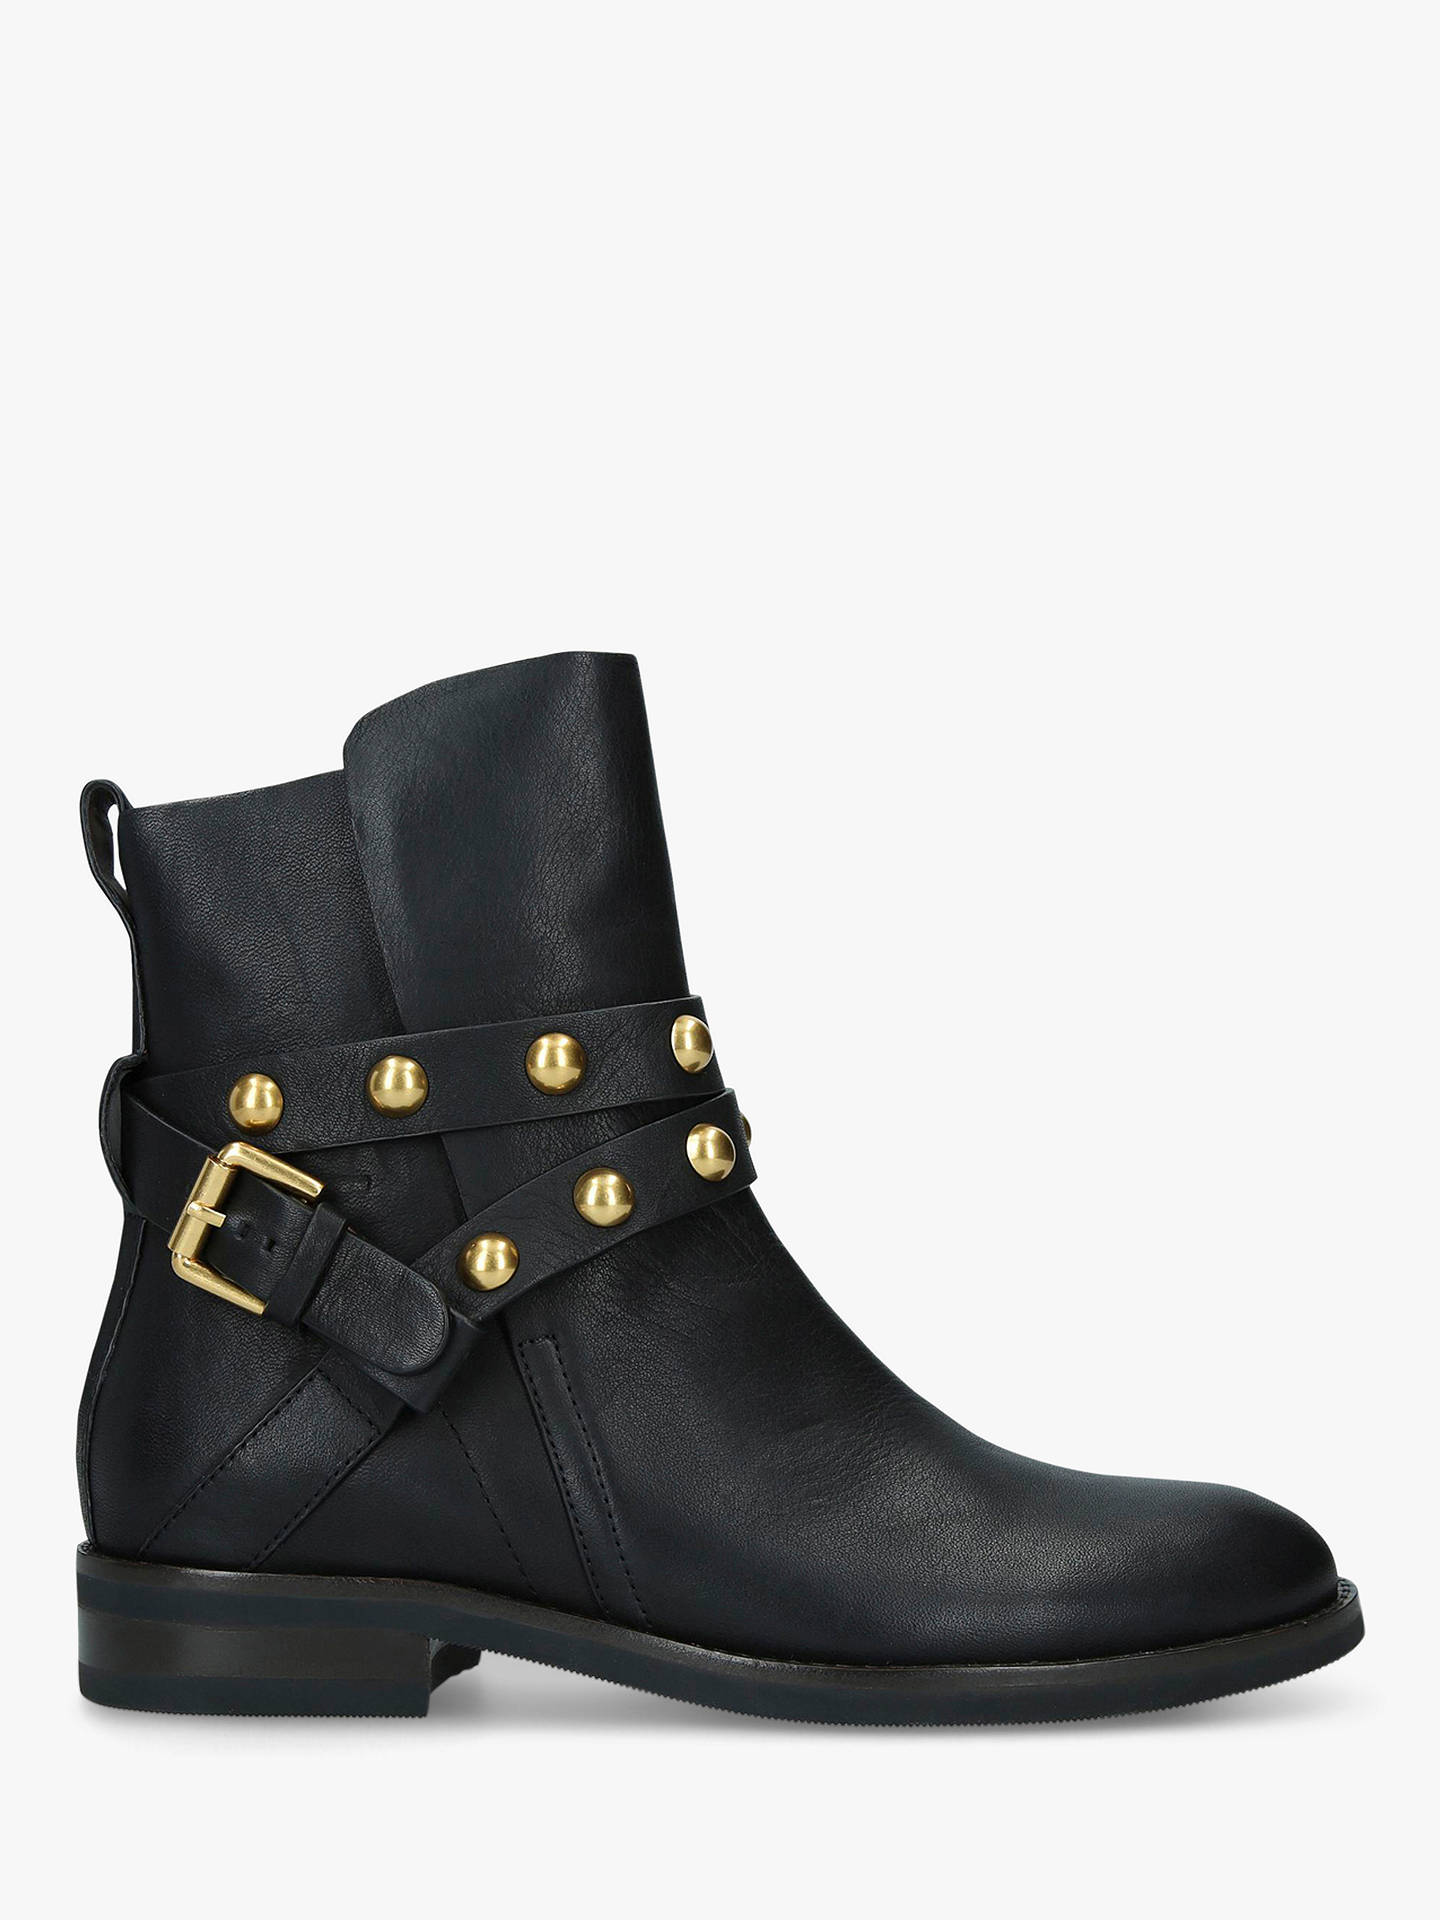 c5616f42583d See By Chloé Strap Leather Ankle Boots, Black